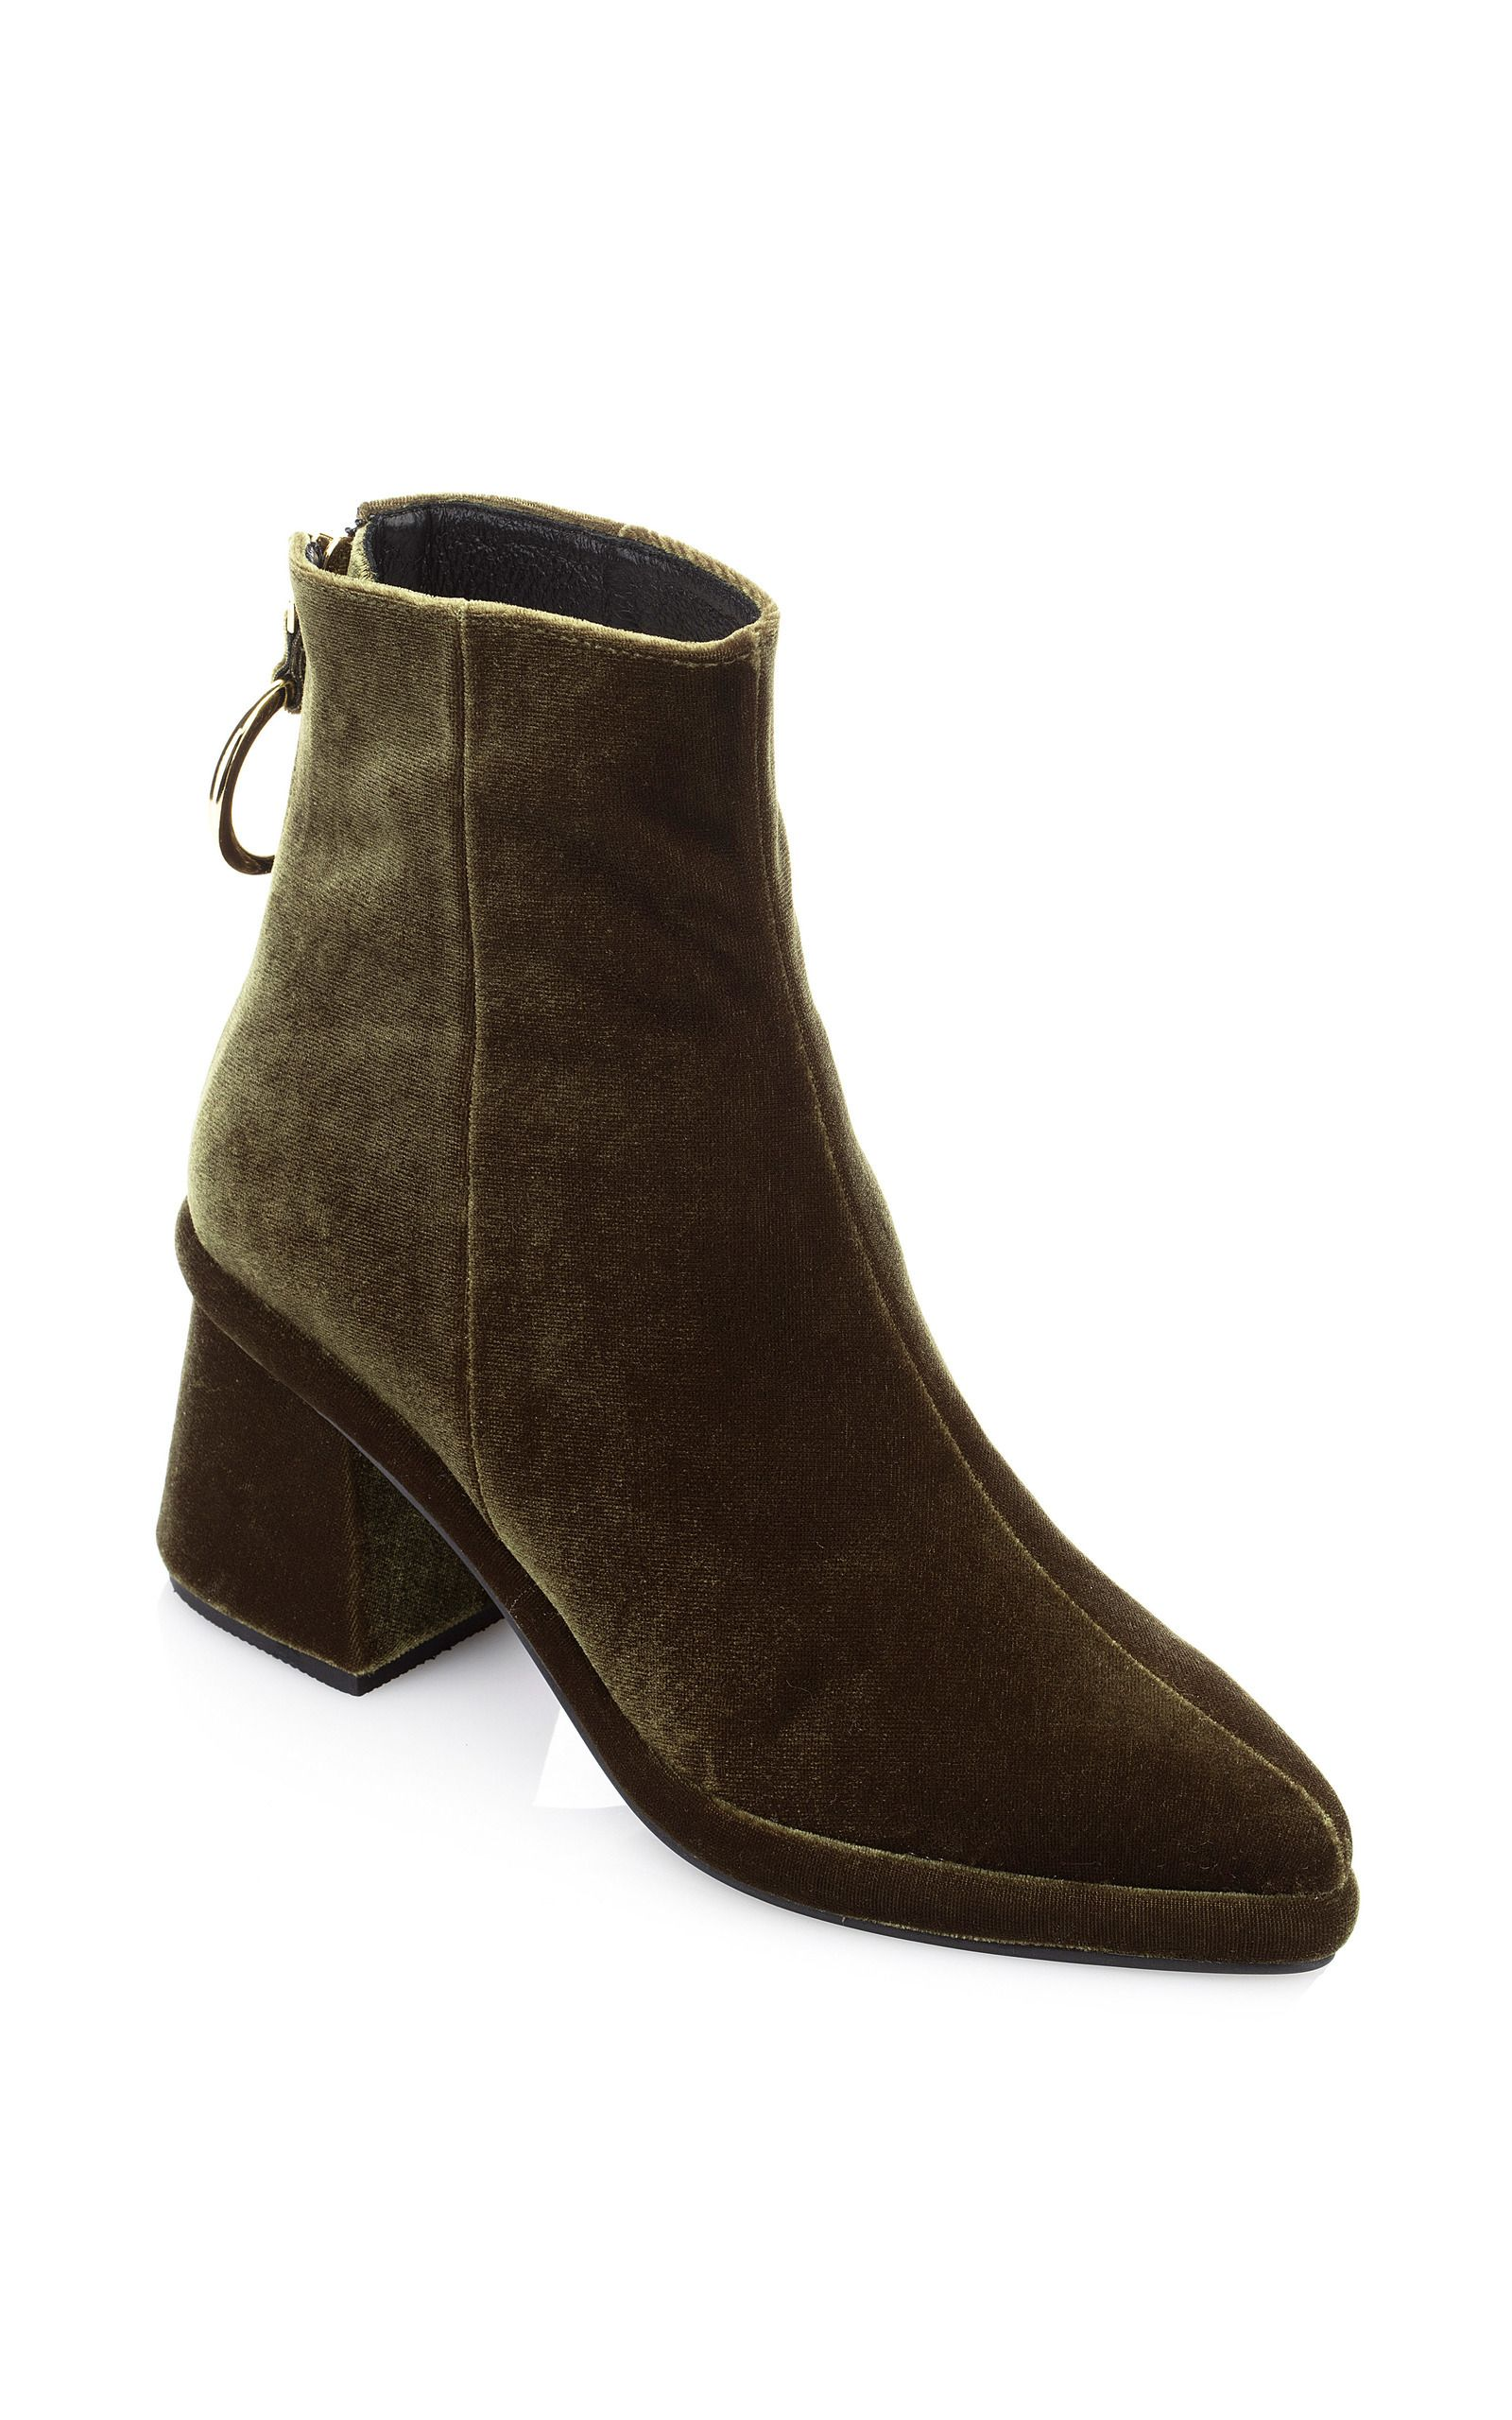 Reike Nen Bottines en velours